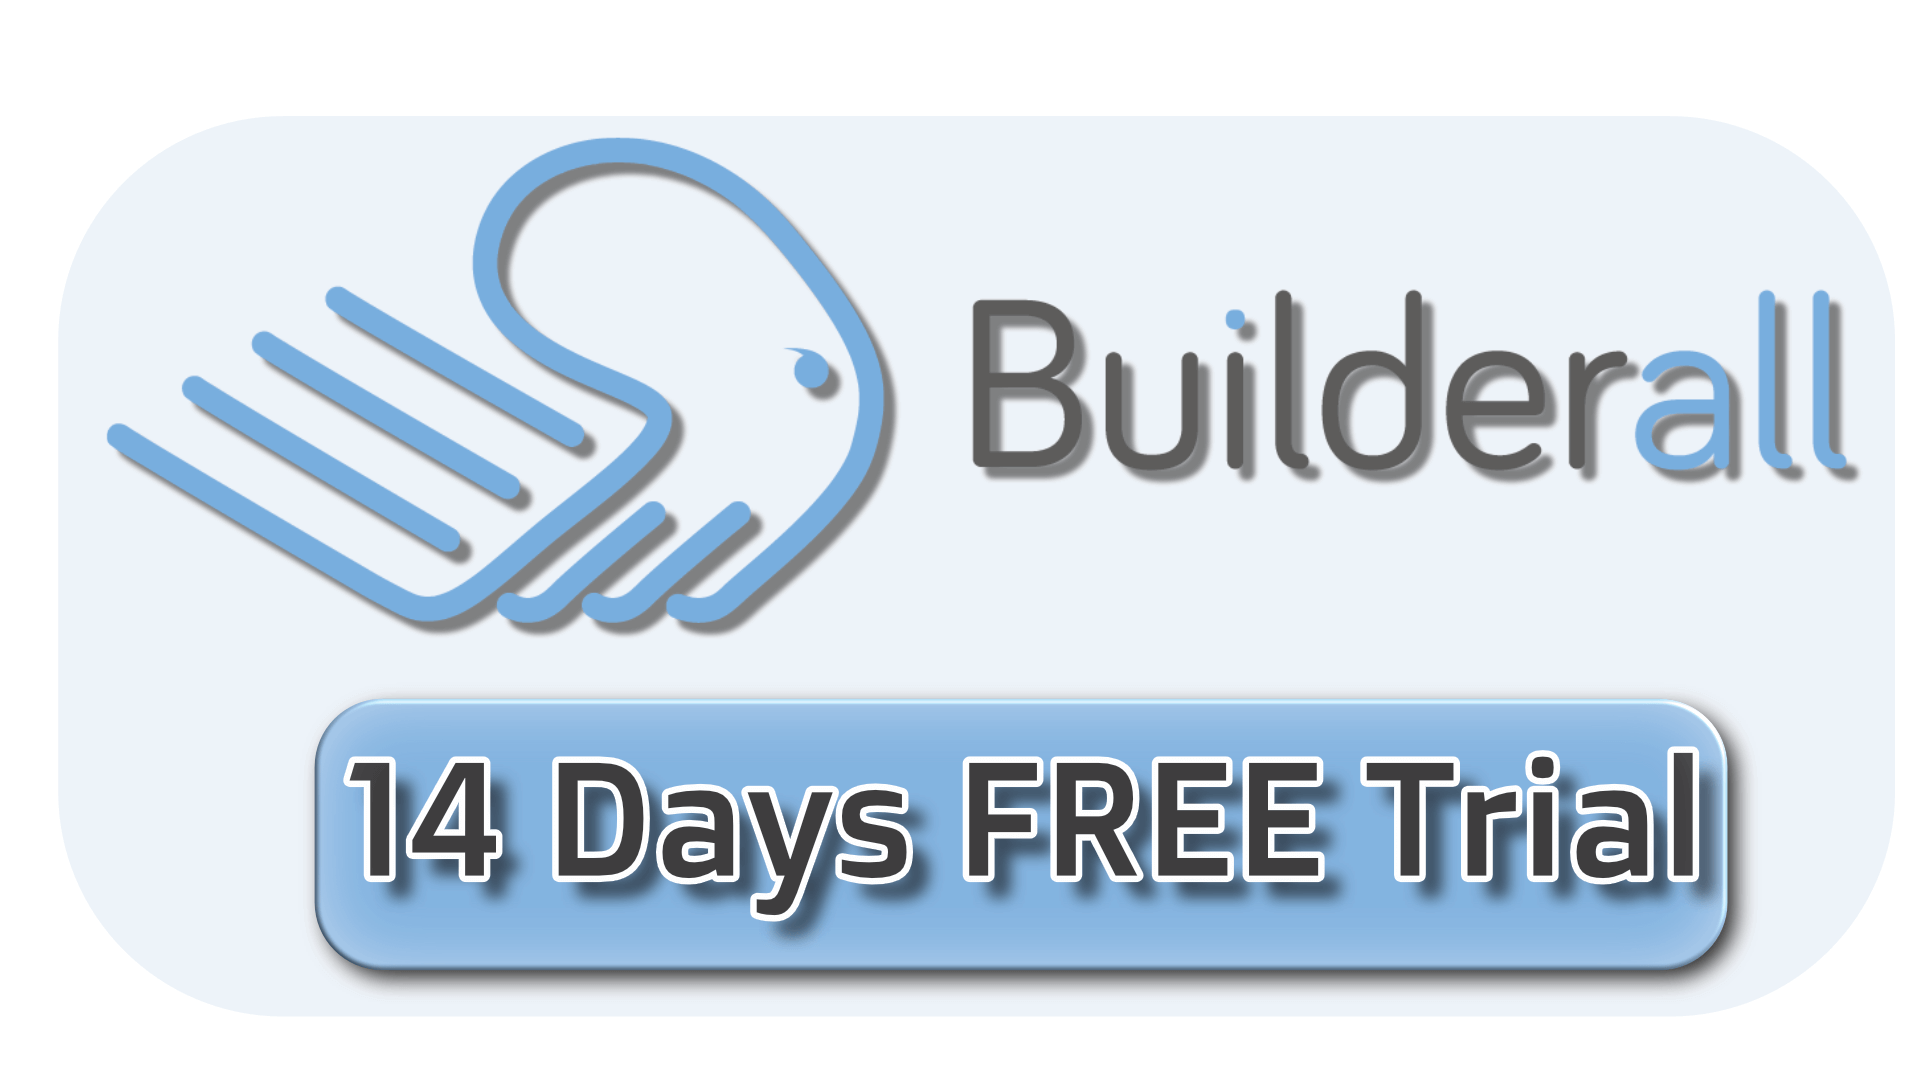 Builderall 14 day free trial